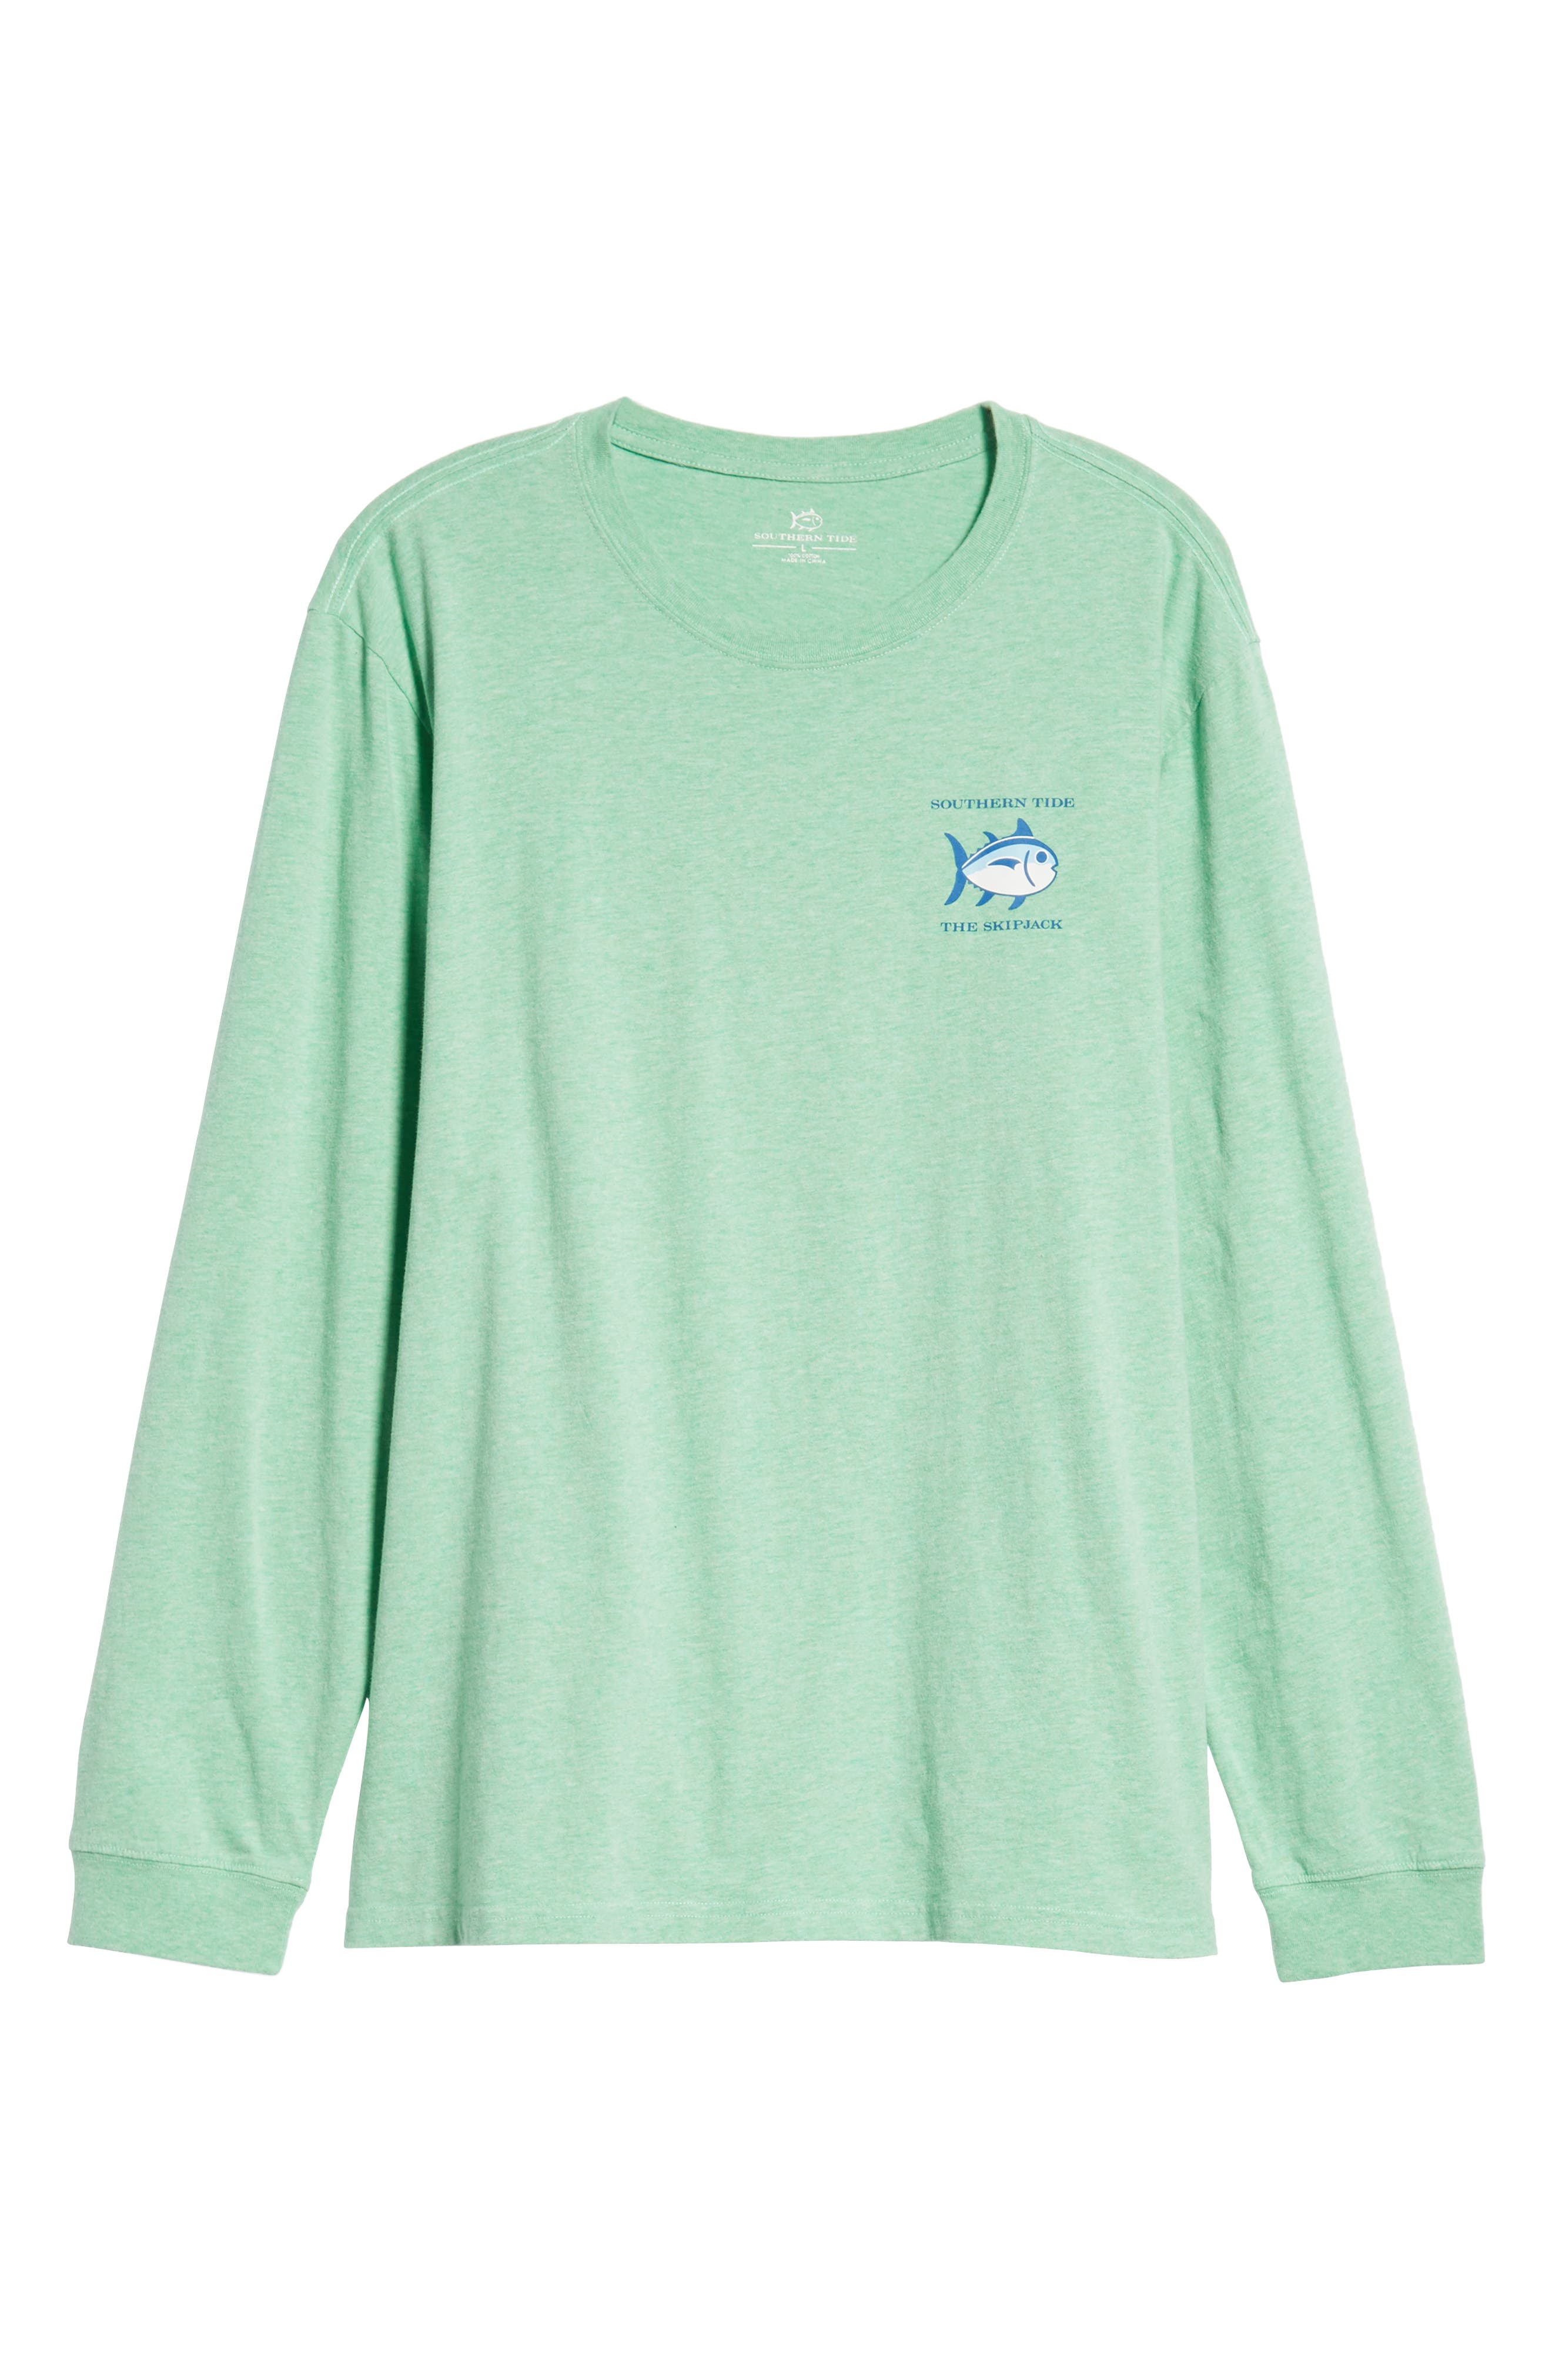 Original Skipjack T-Shirt,                             Alternate thumbnail 36, color,